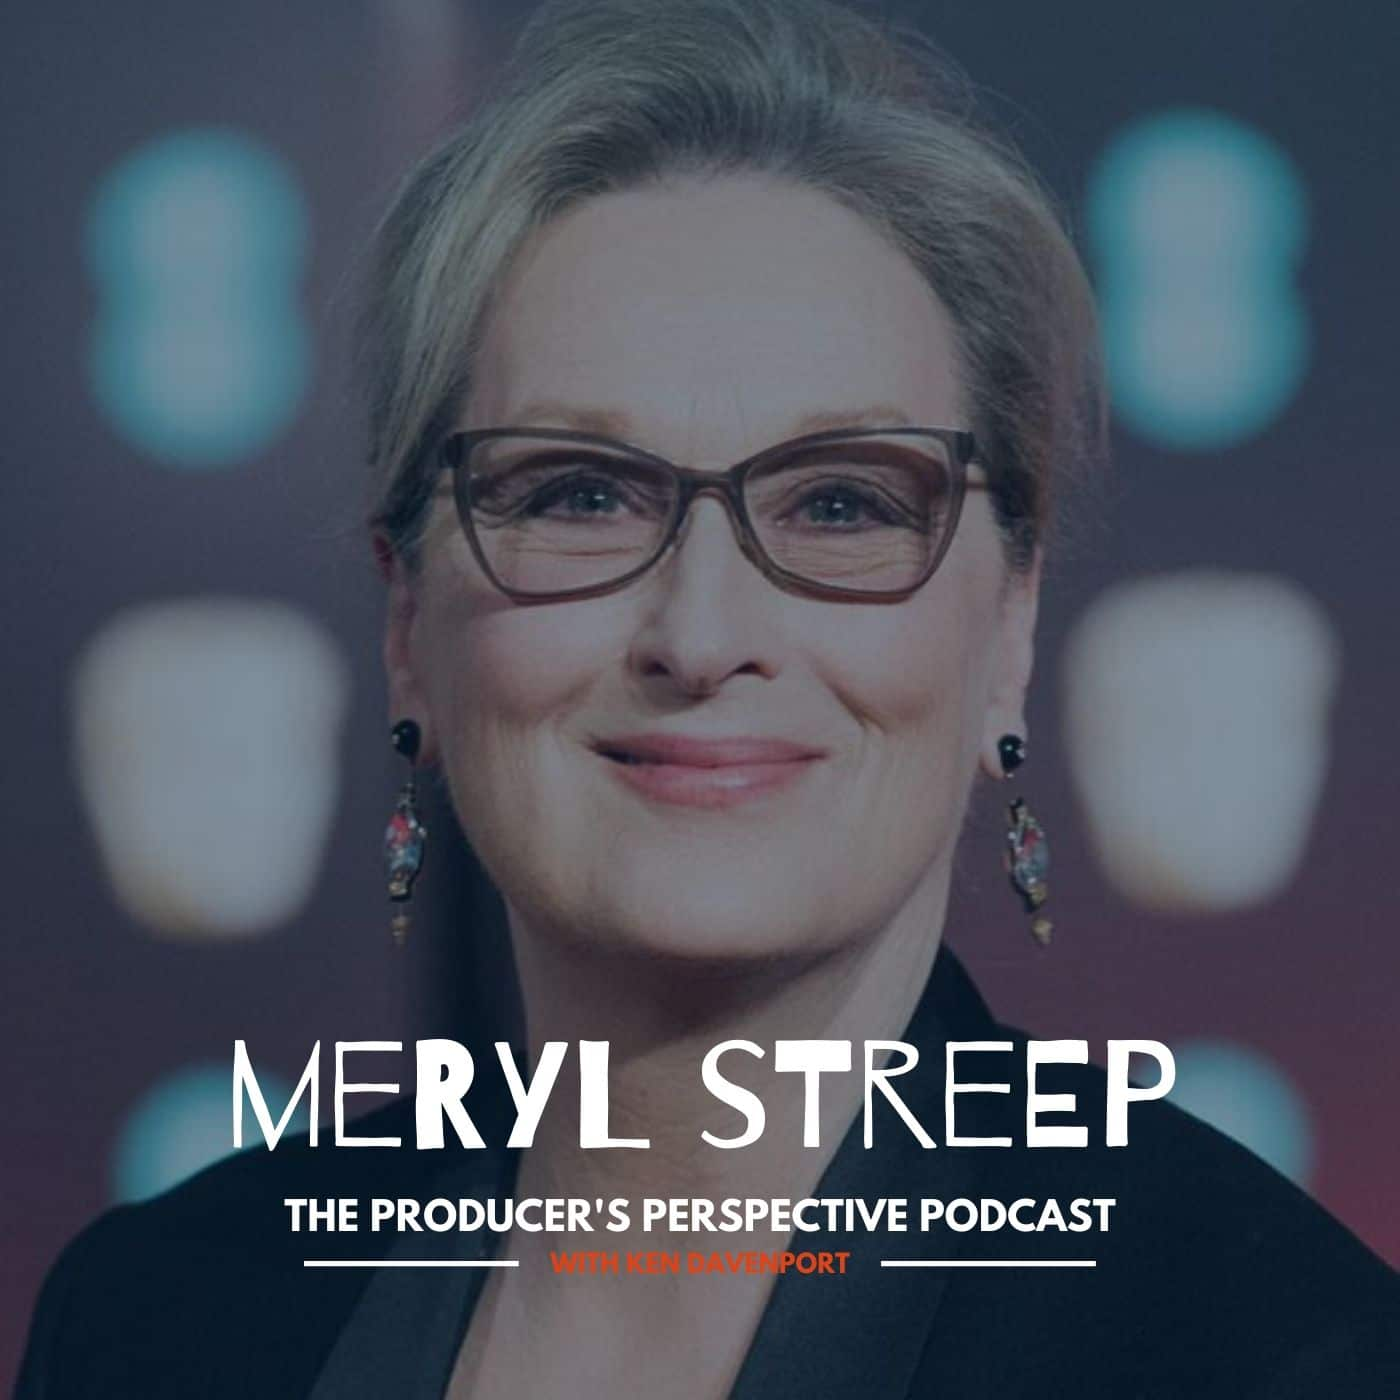 Ken Davenport's The Producer's Perspective Podcast Episode 184 - Meryl Streep